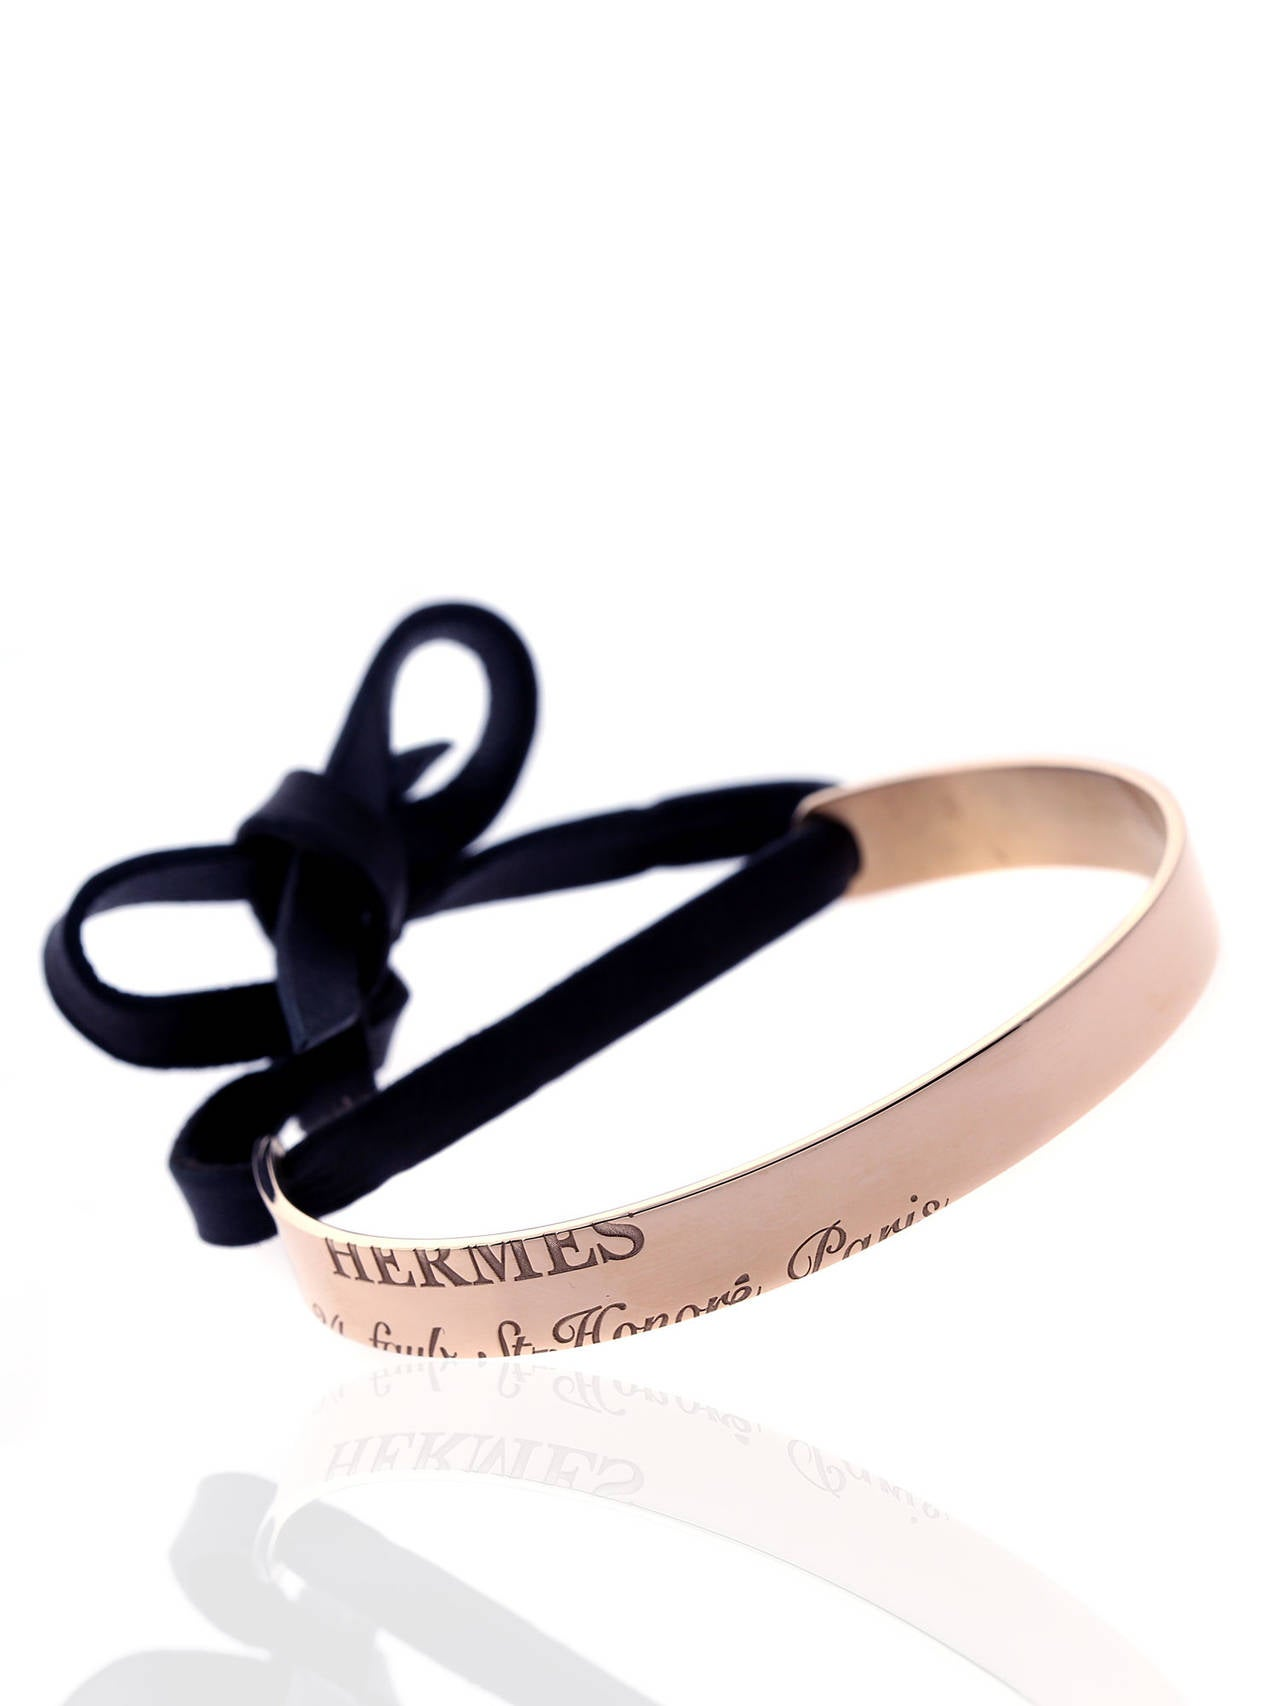 A chic authentic Hermes cuff featuring engravings of the brand maker and address in Paris in 18k rose gold, to seal the deal a contrasting black leather has been added which can be tied.